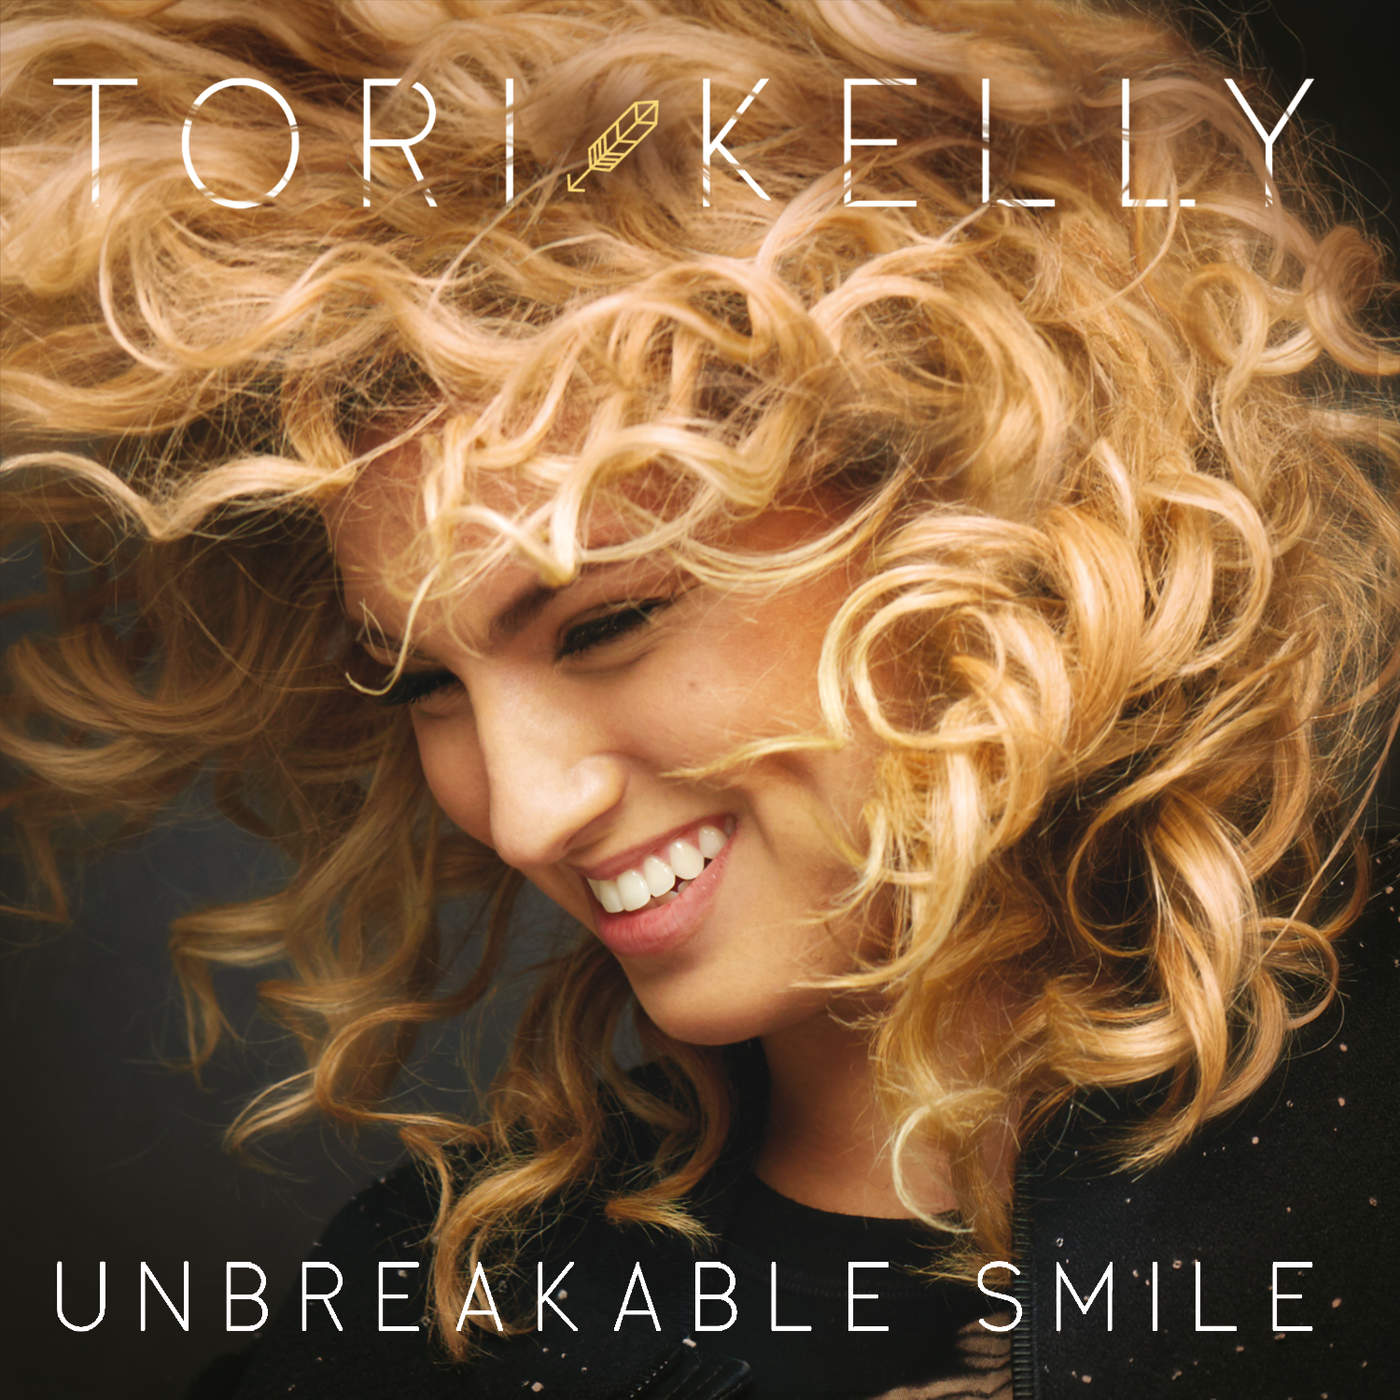 Tori Kelly - Unbreakable Smile (Deluxe Version) Cover